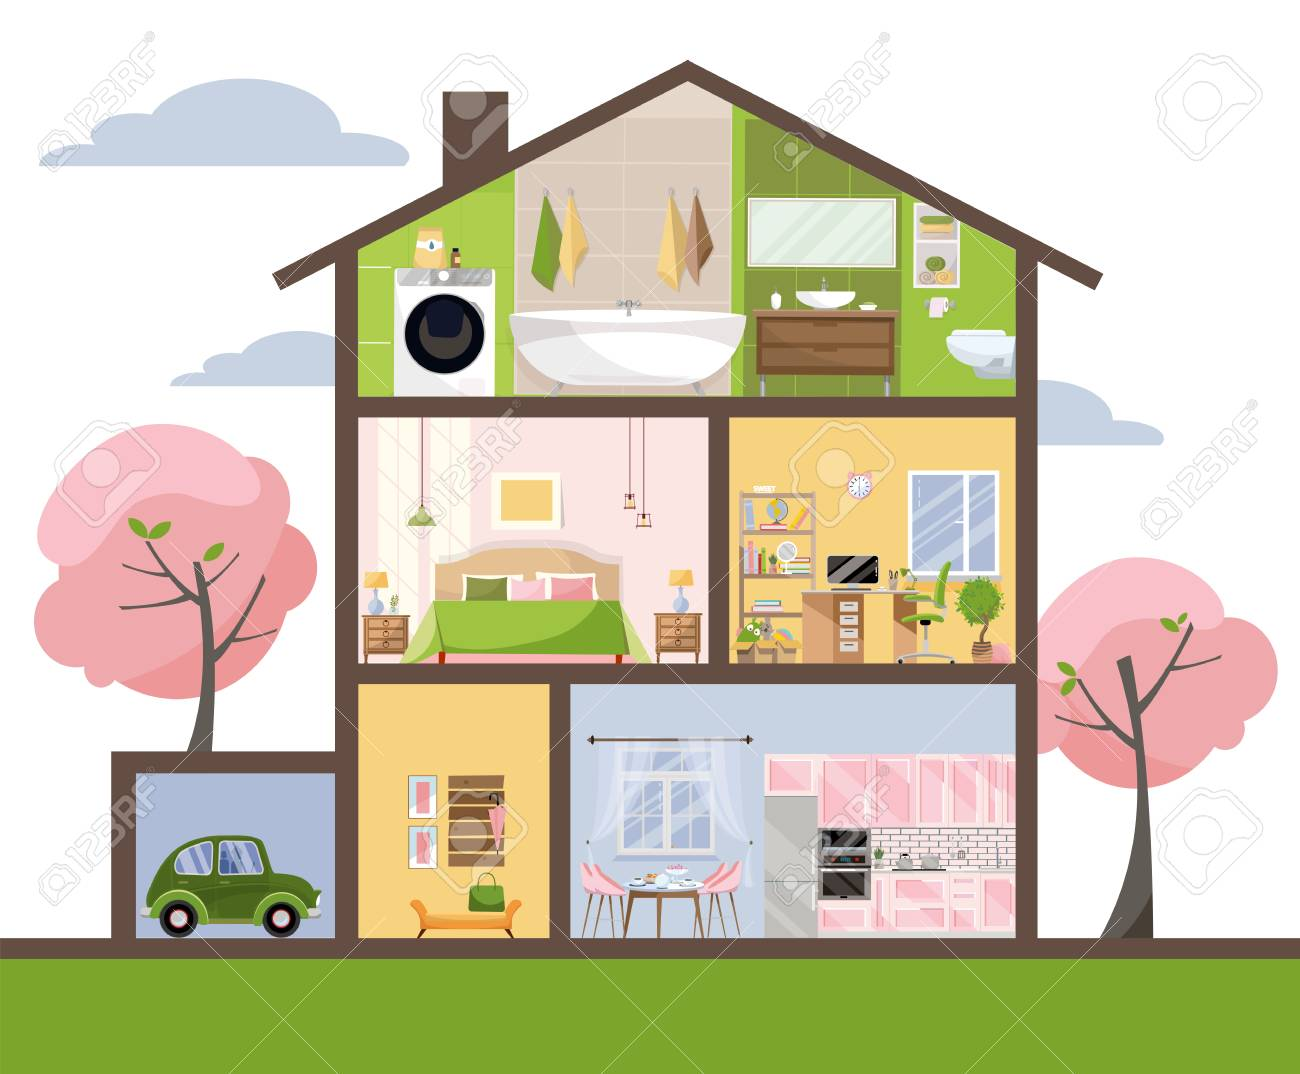 House in cut. Detailed interior. Set of rooms with furniture. Cross section with bedroom, living room, kitchen, dining, bathroom, nursery, garage. Home inside. Flat cartoon style vector illustration. - 122496030